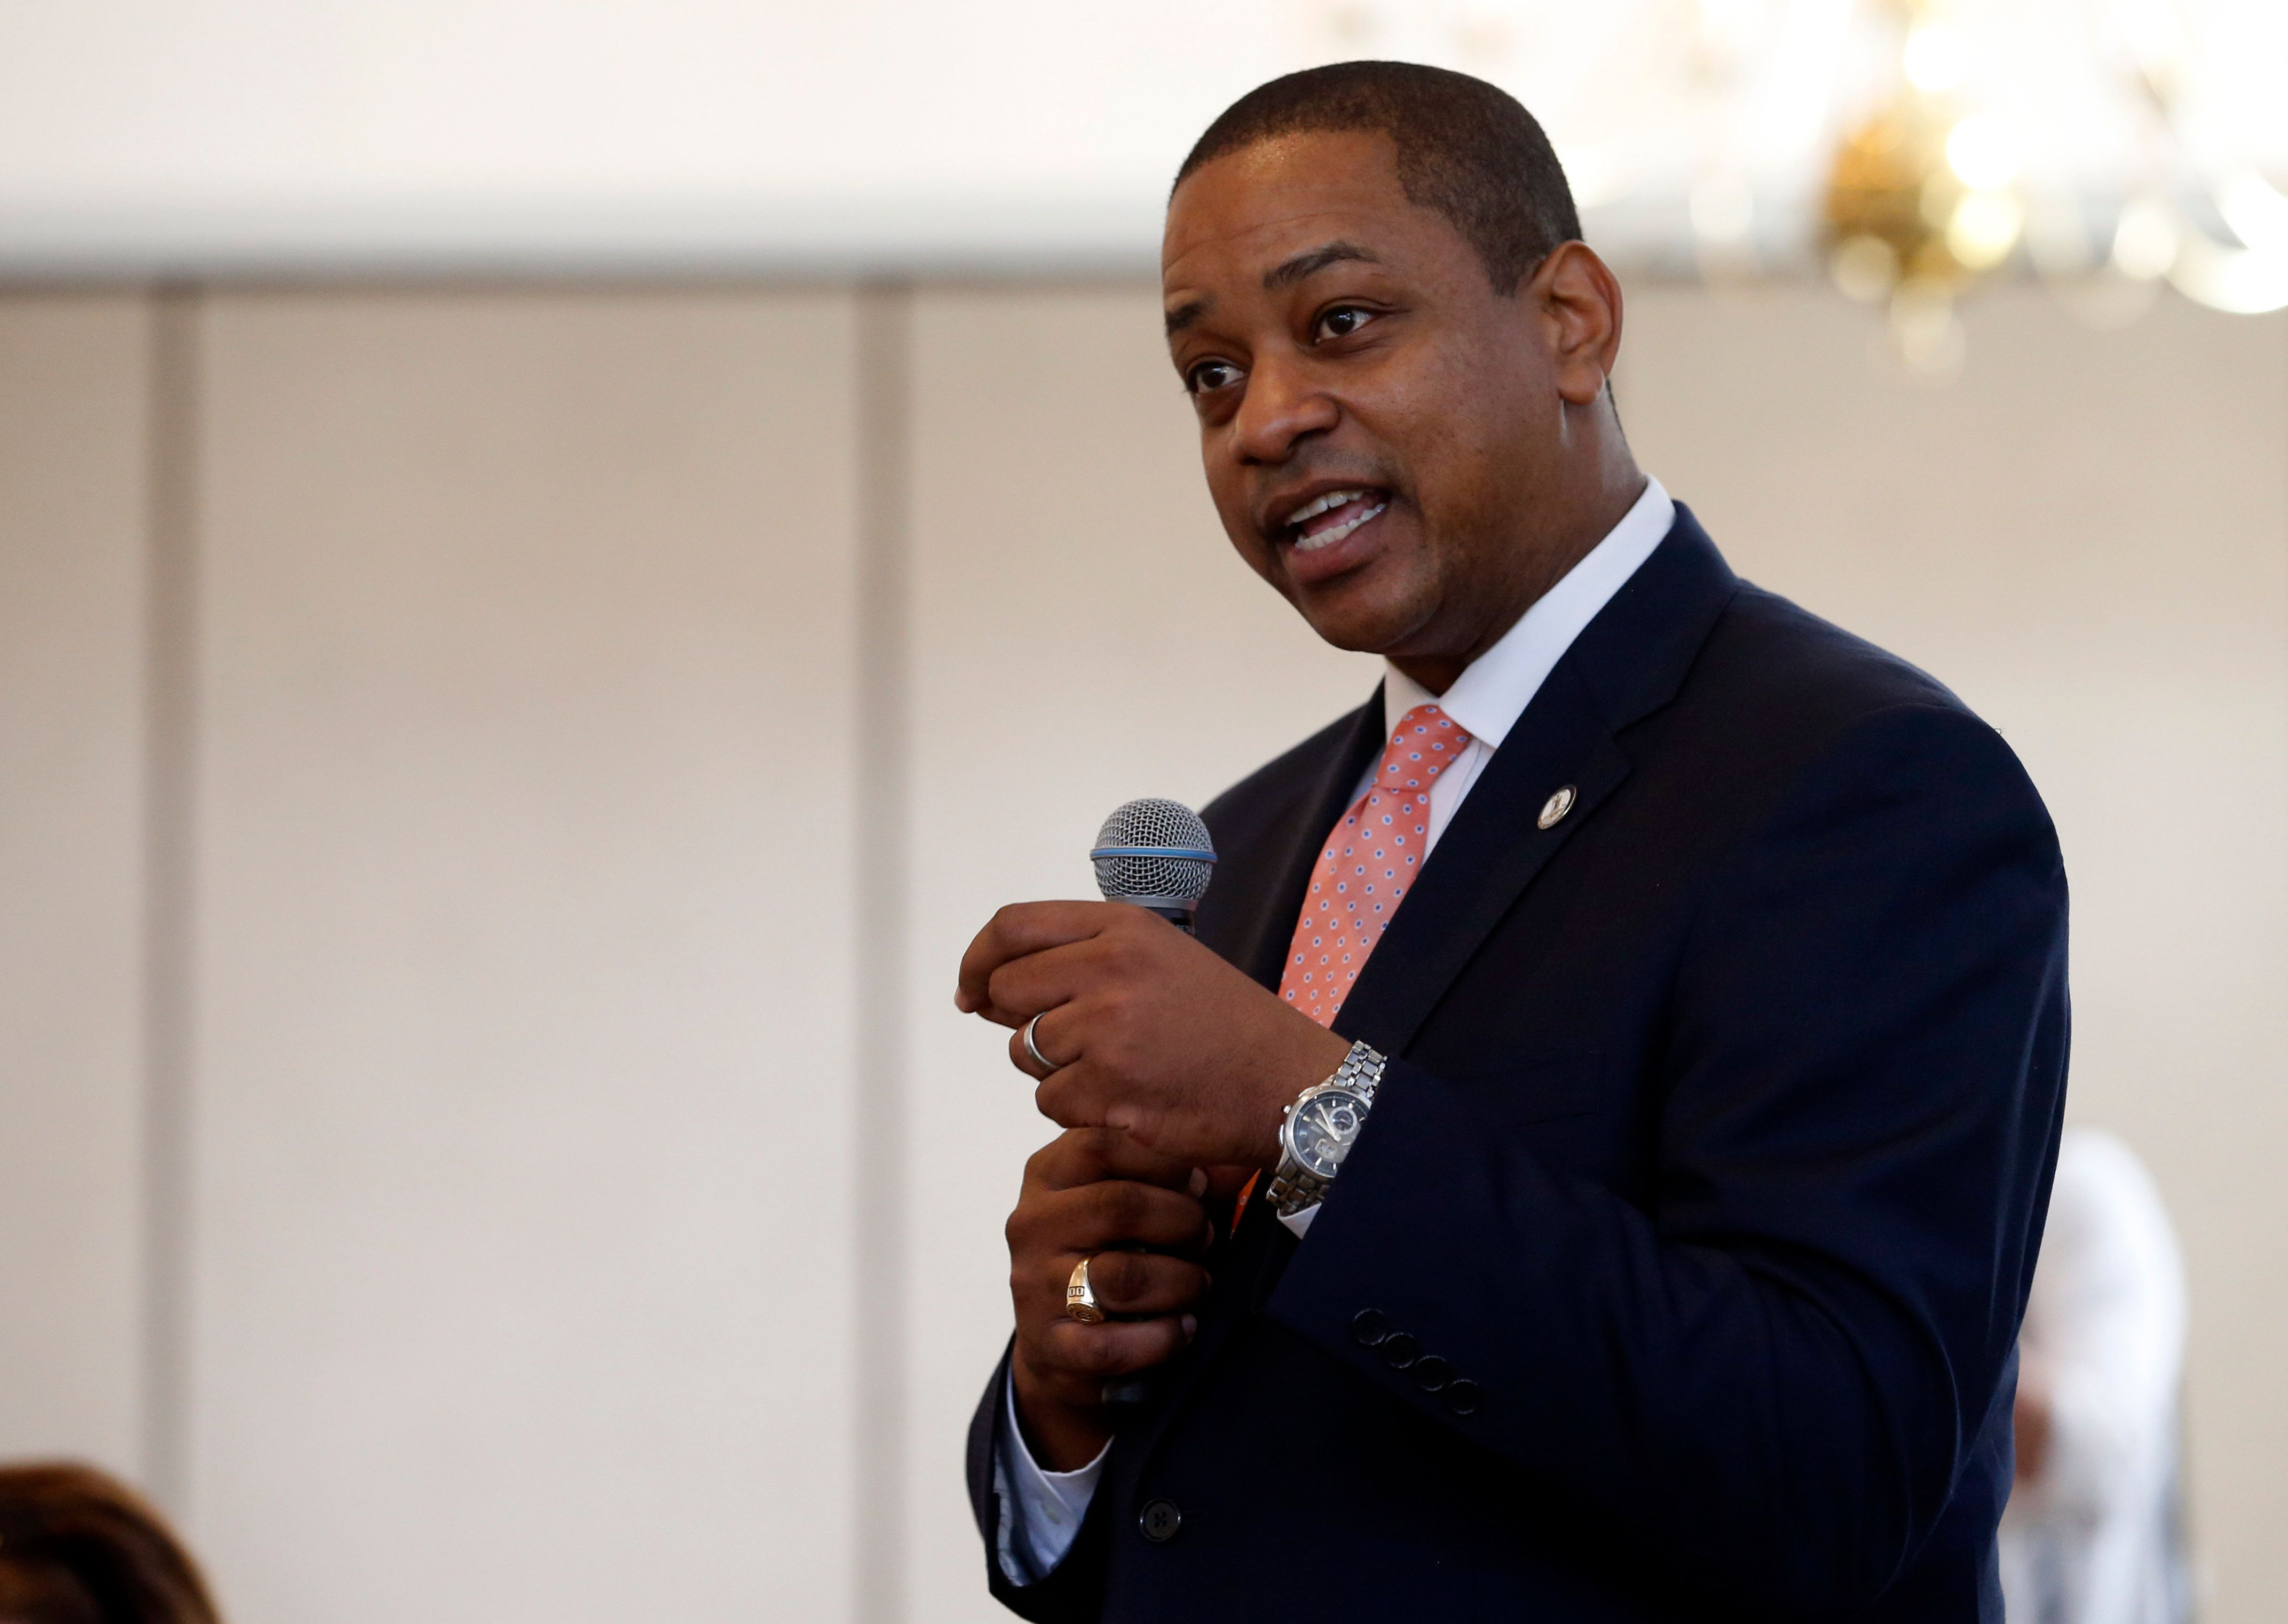 Justin Fairfax's Accuser Comes Forward, Details Alleged Sexual